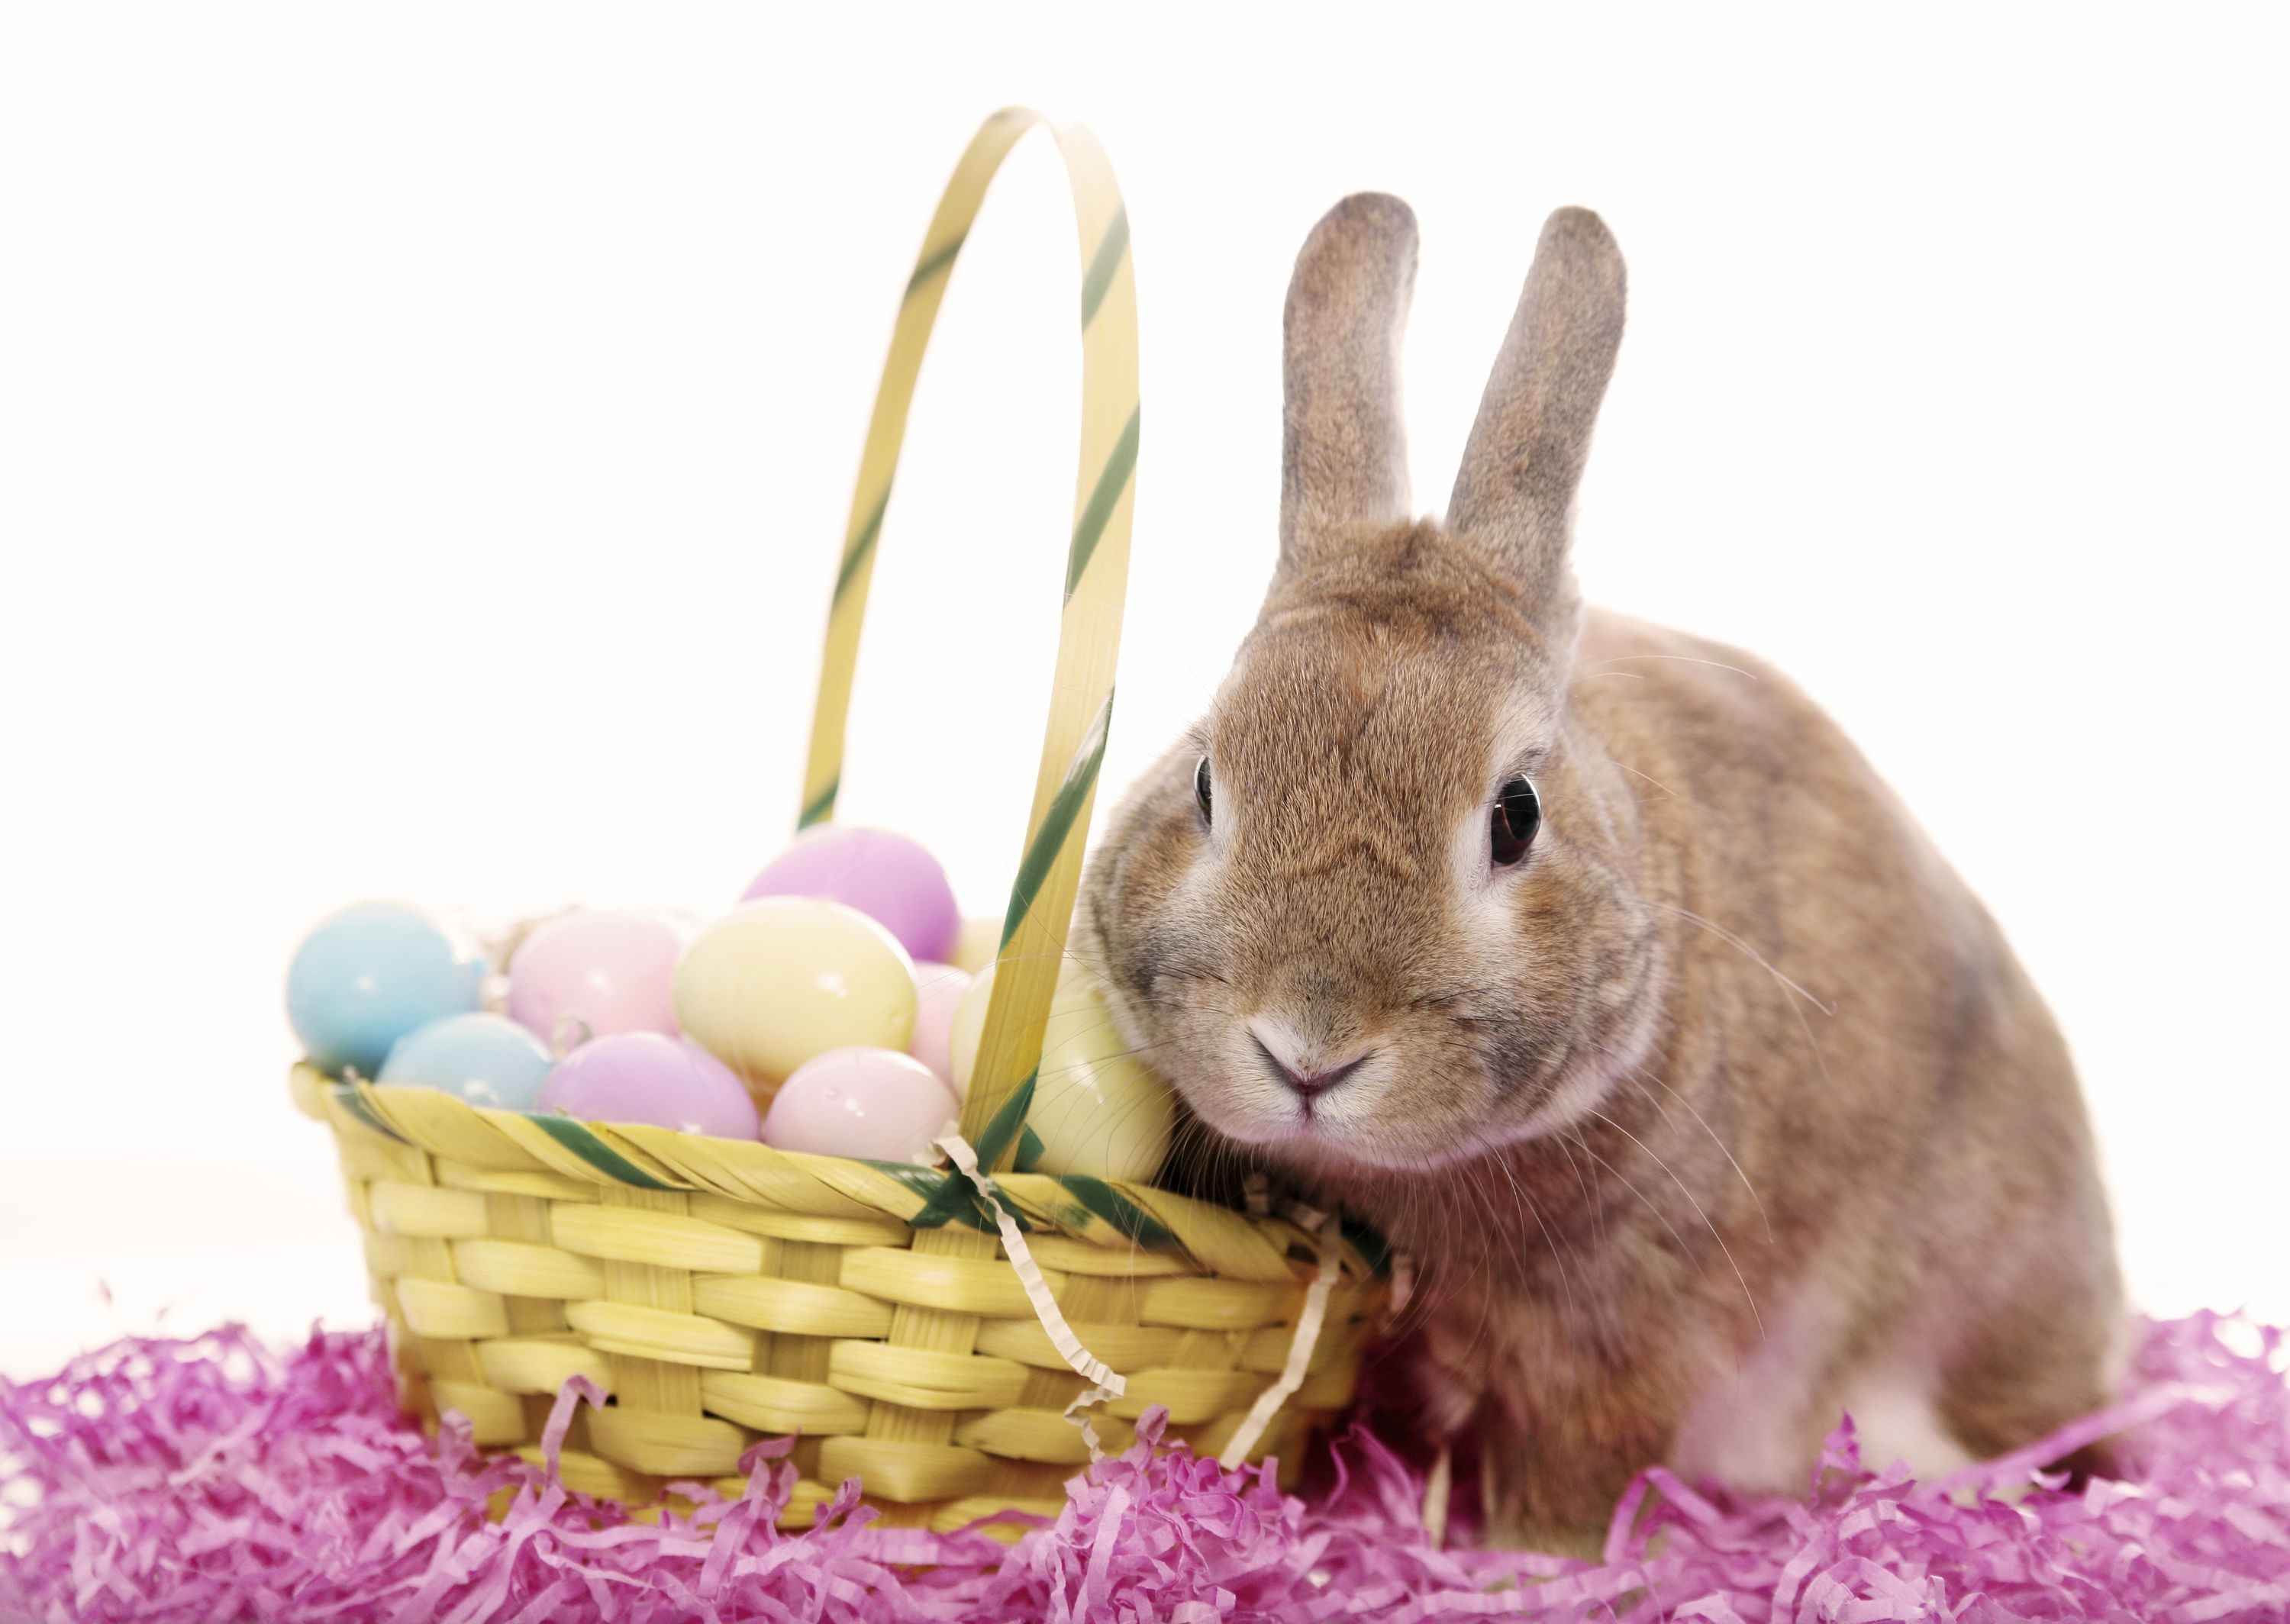 Easter Bunny Wish You Happy Easter Top quality wallpapers 3000x2128